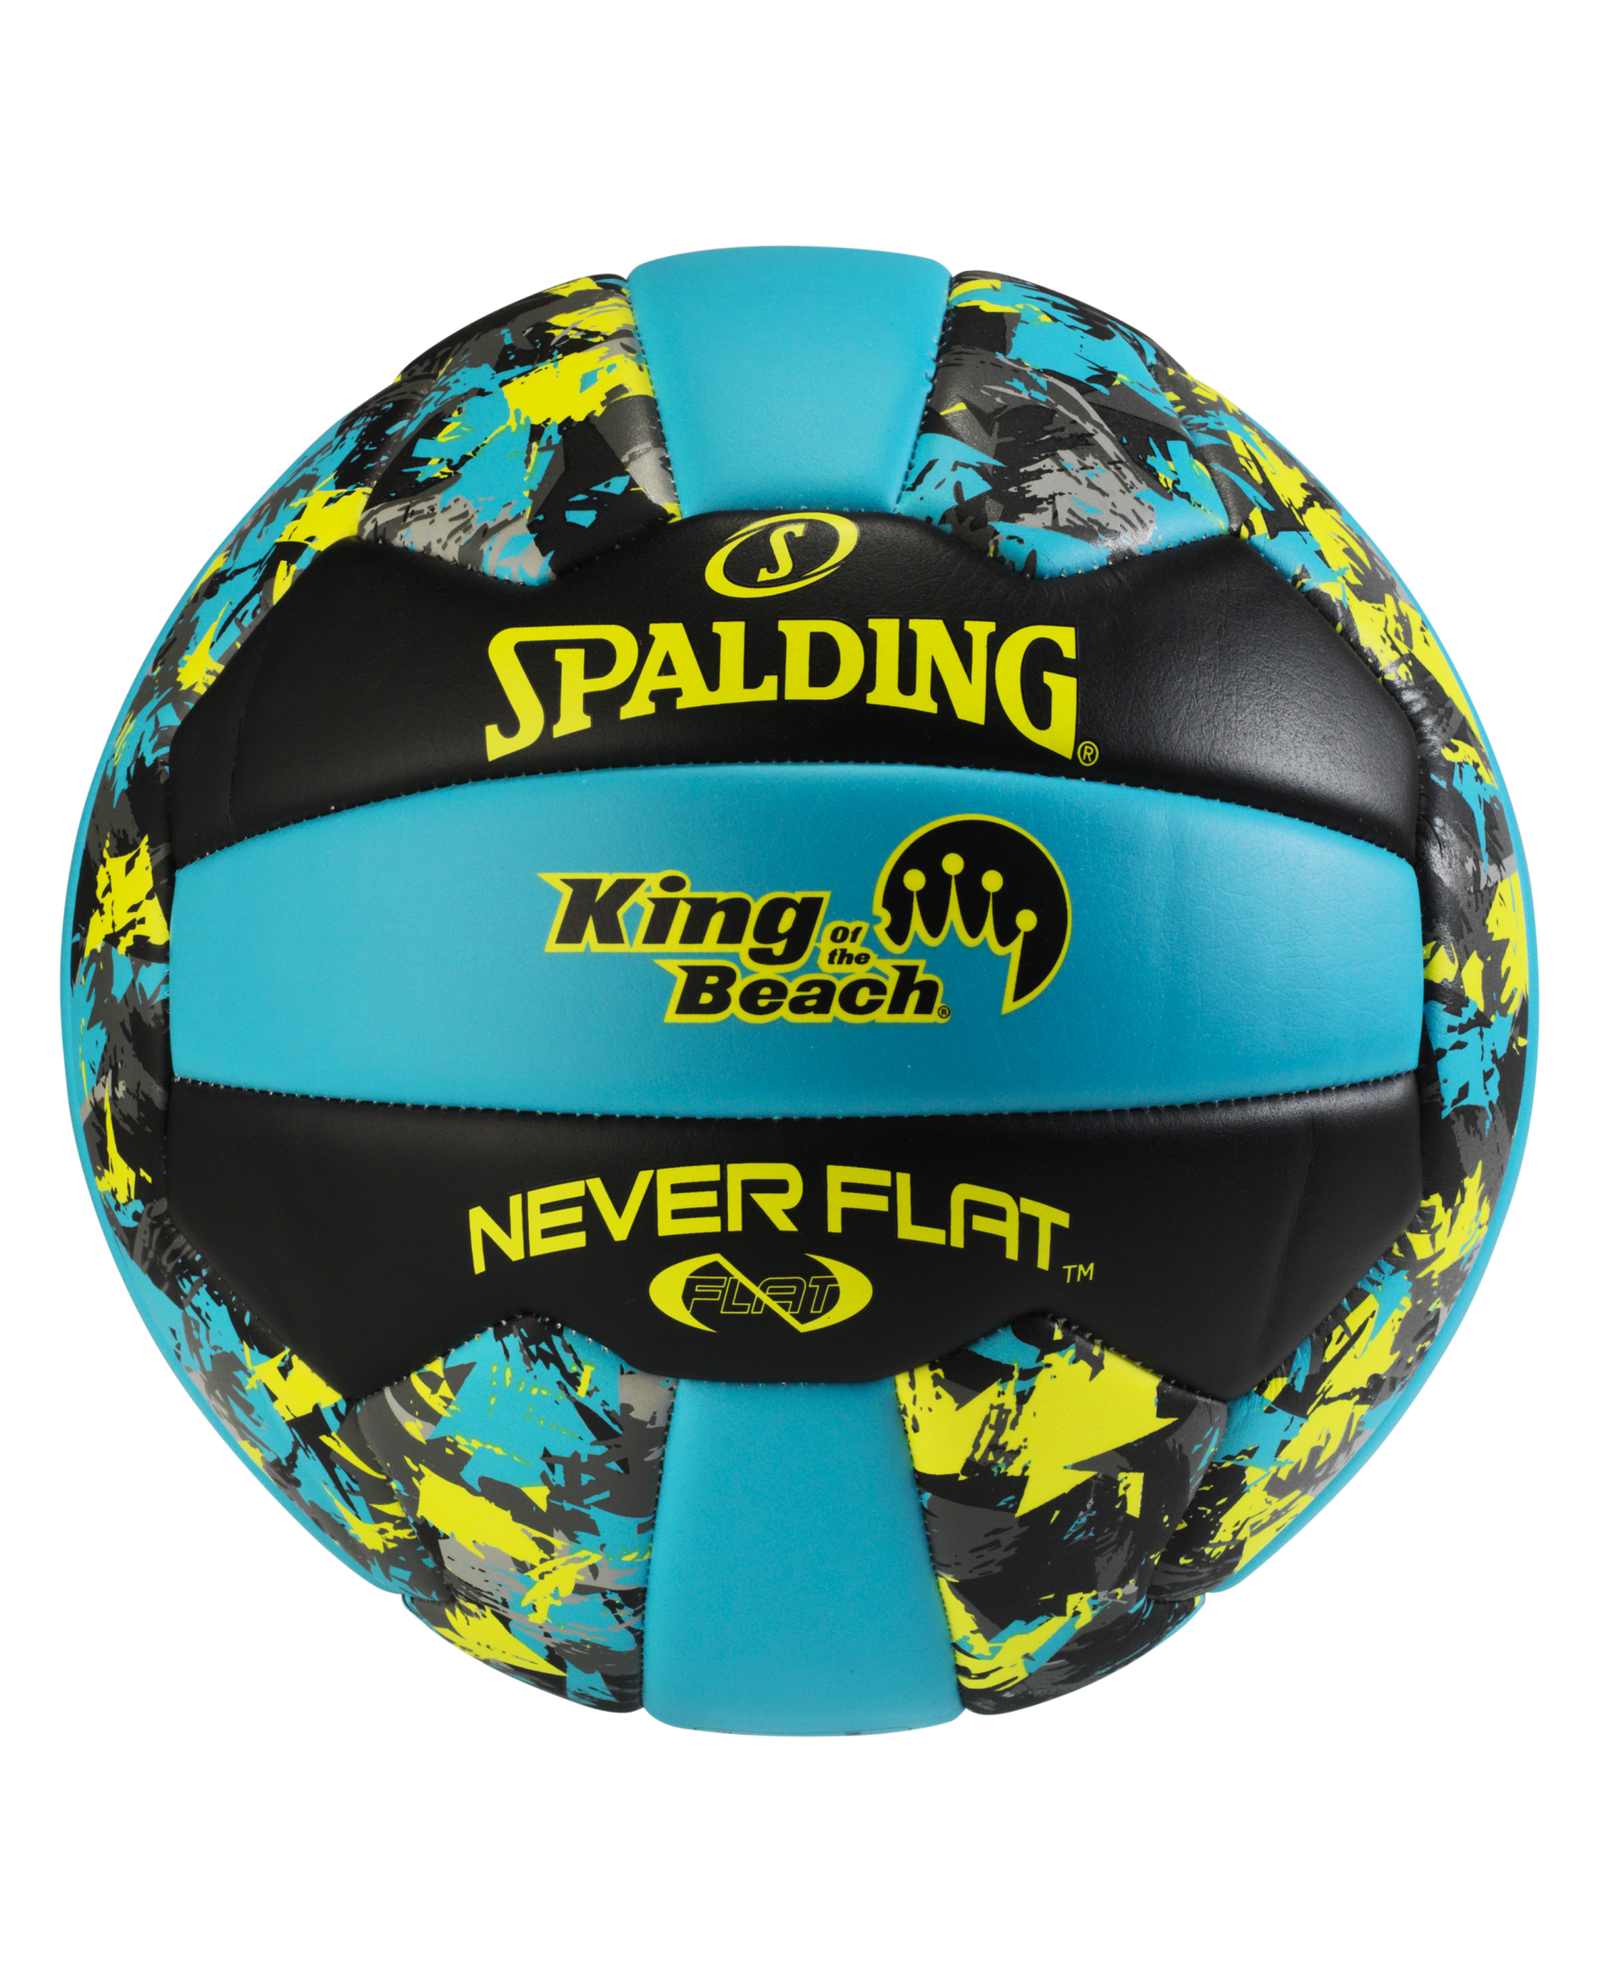 spalding volleyball blue and black